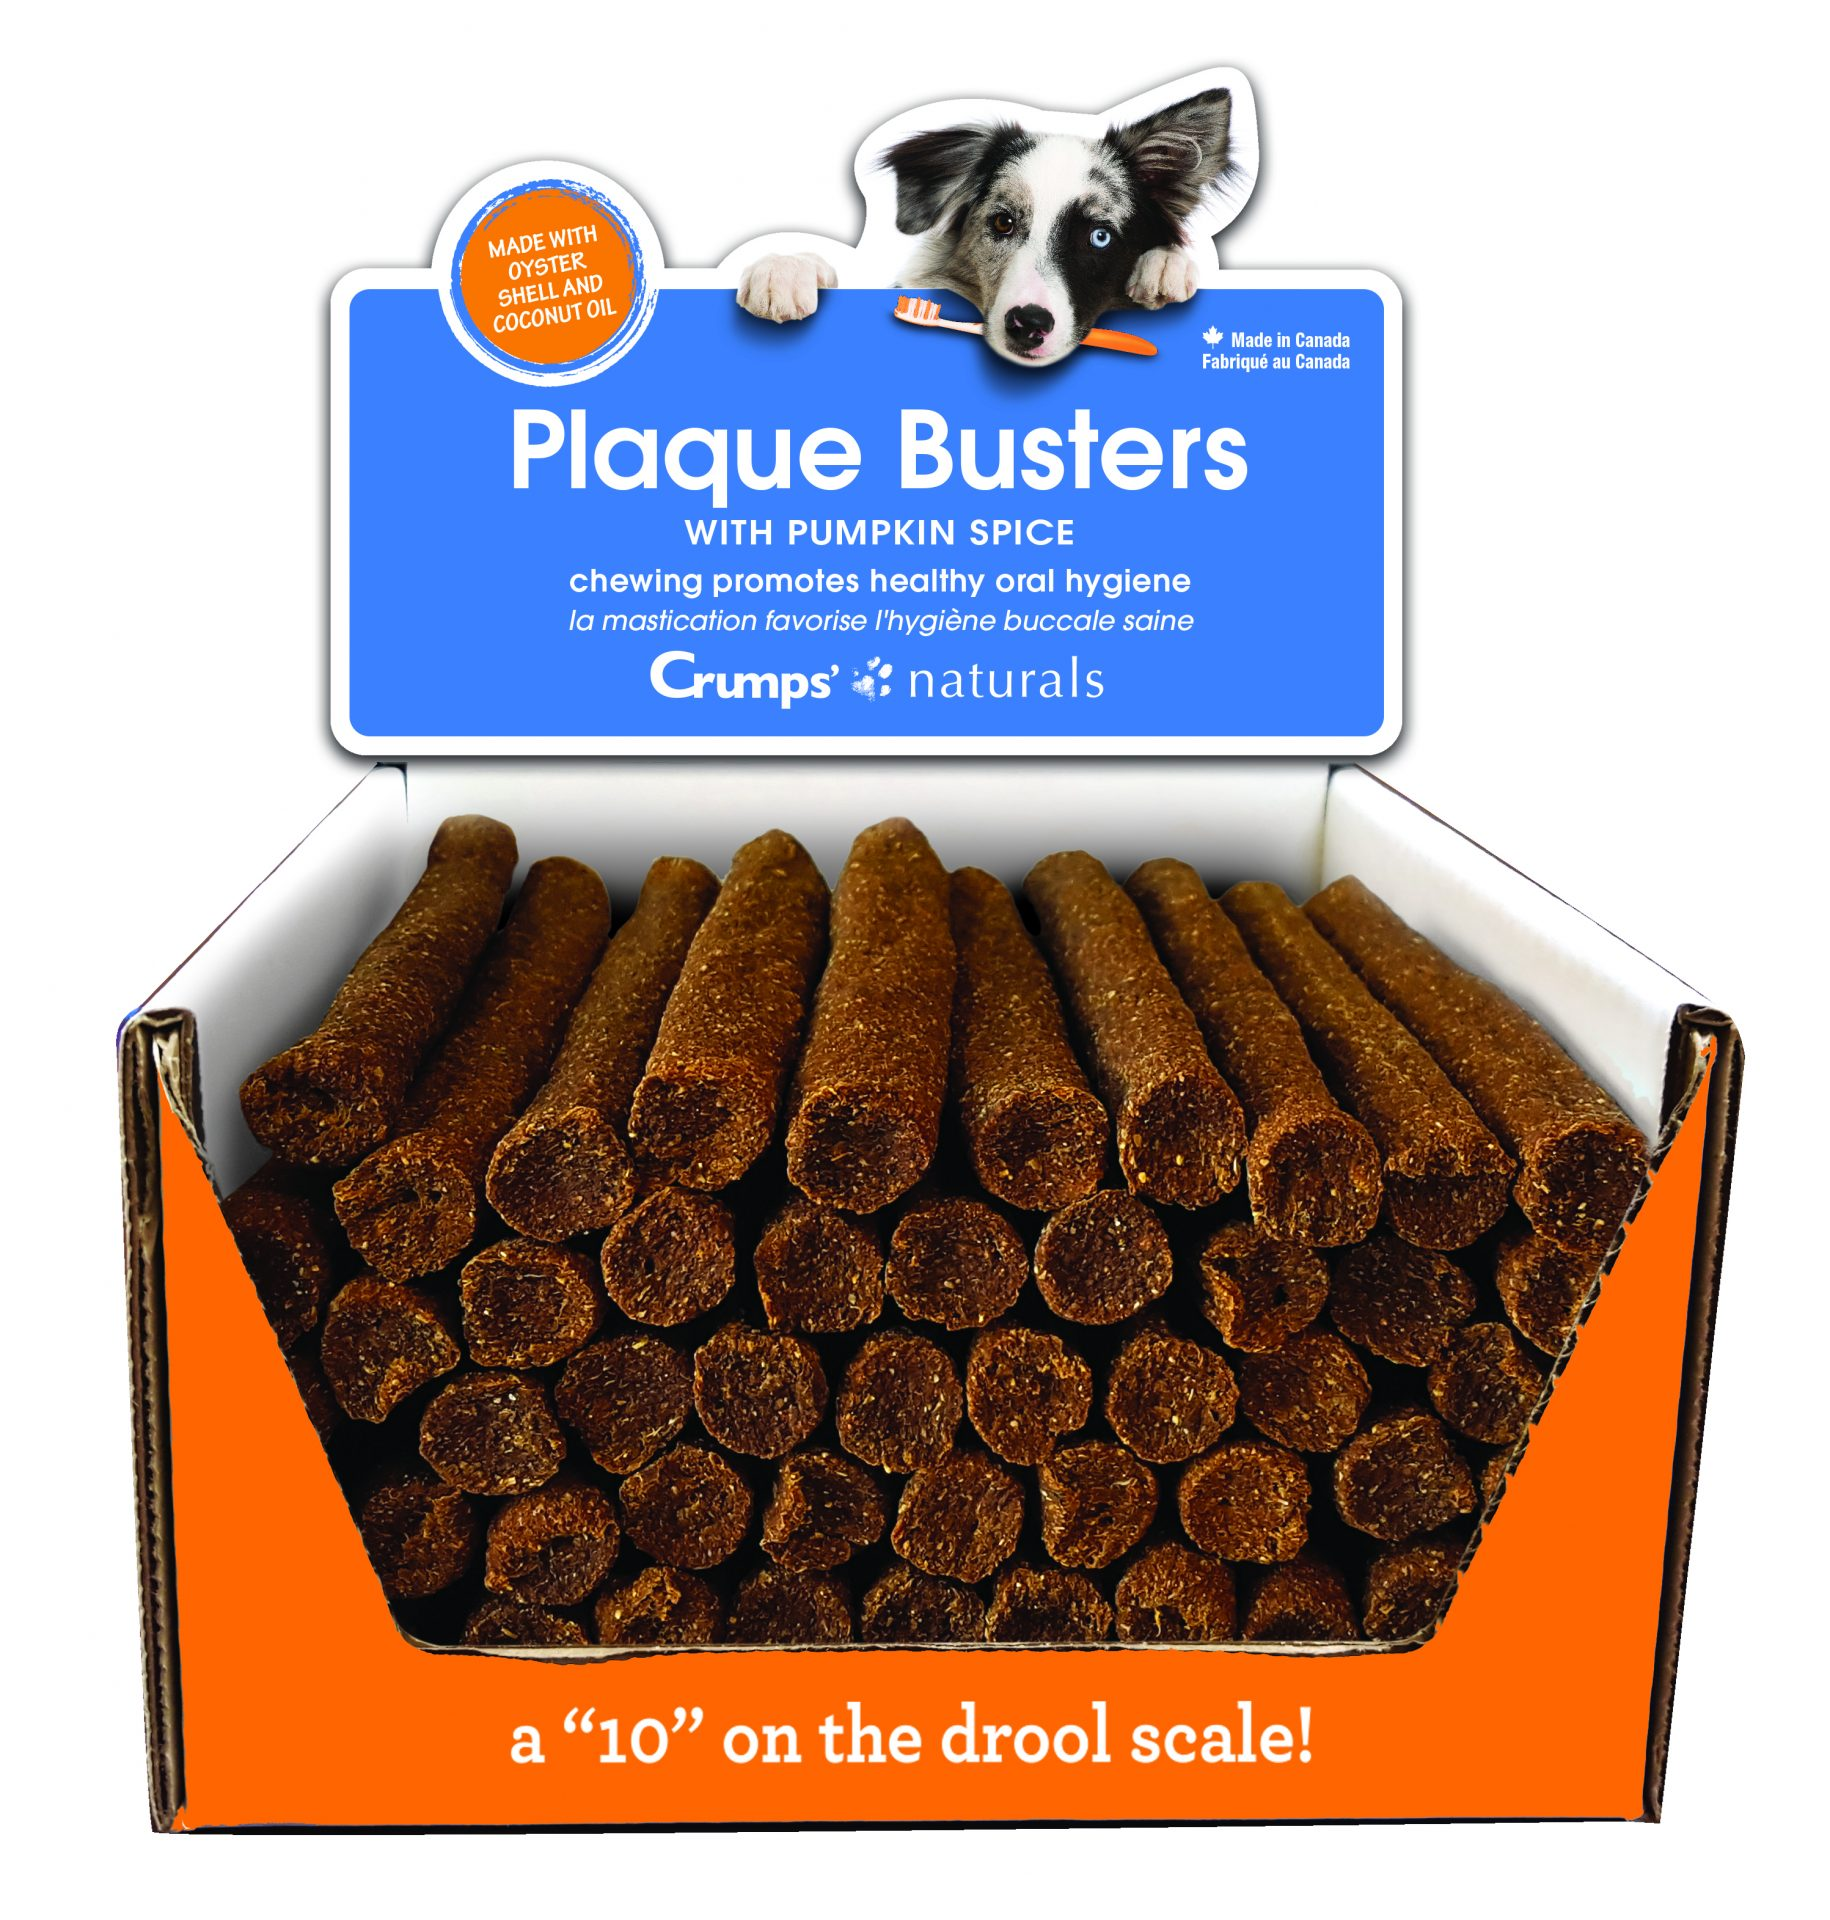 Crumps' Naturals Plaque Busters with Pumpkin Spice Dog Treats Image